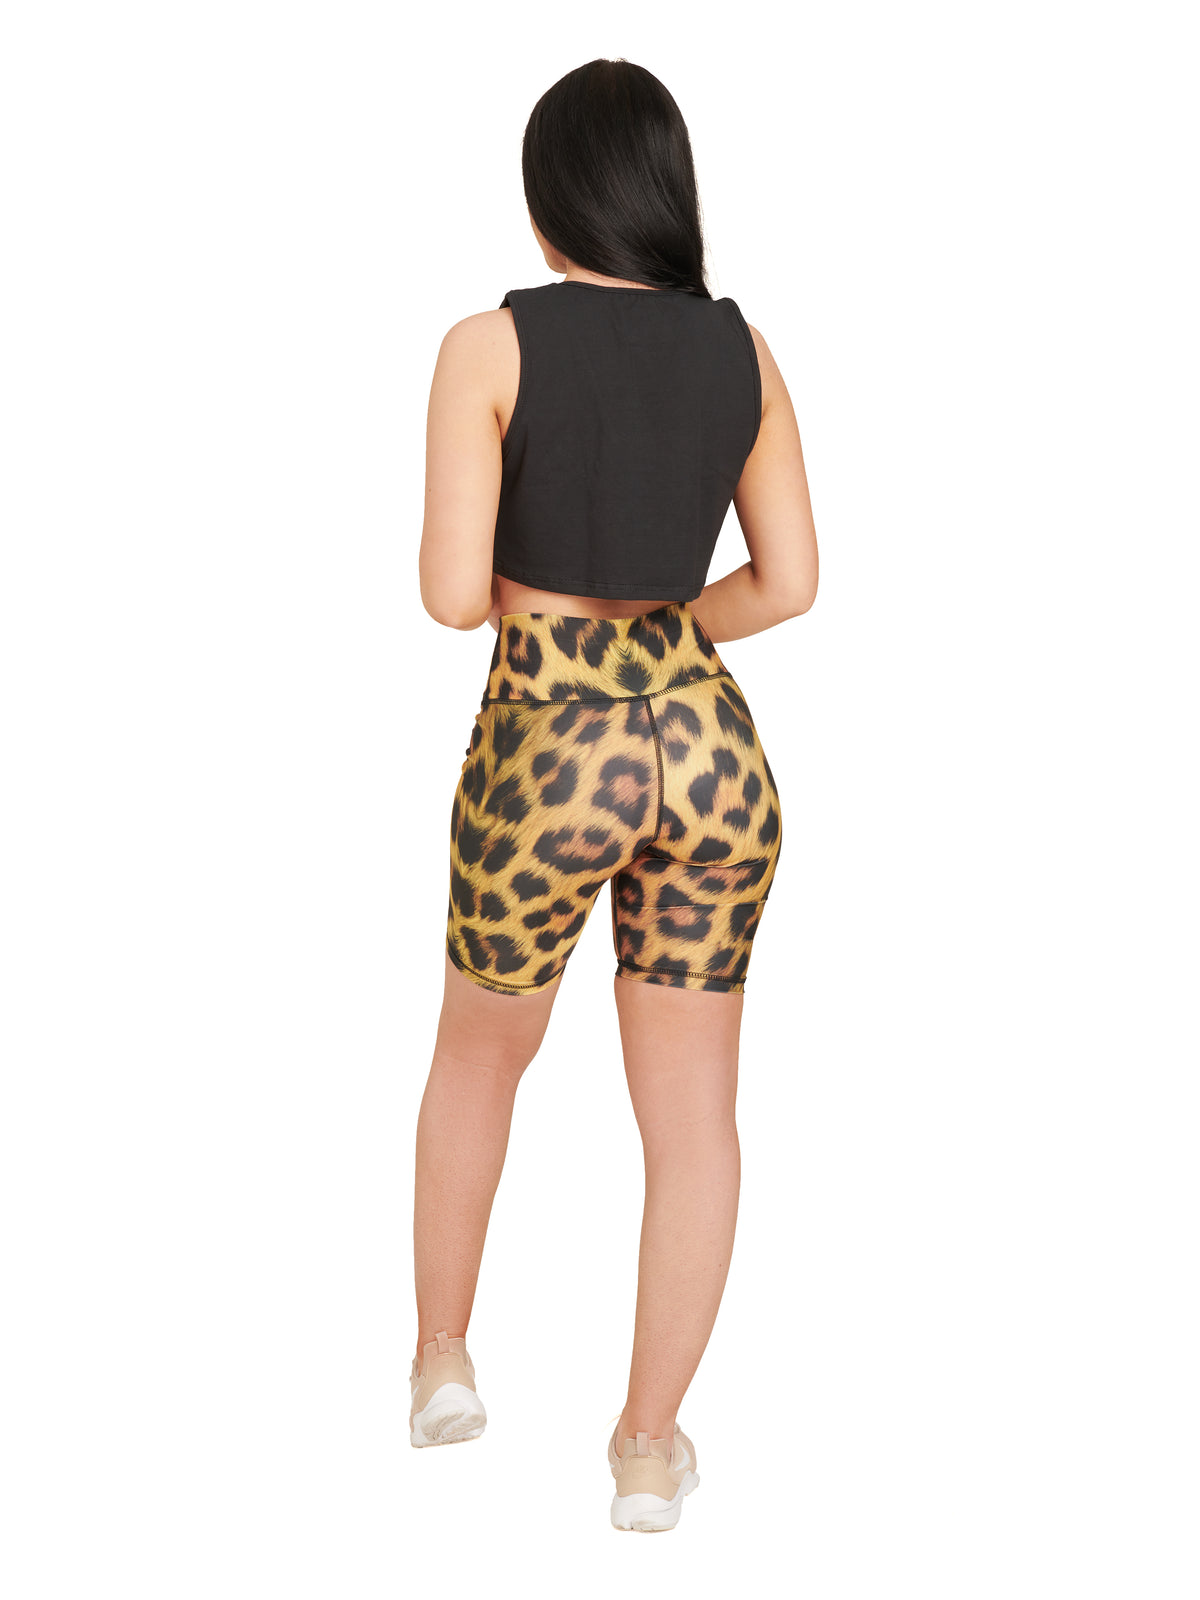 SALE - Bicycle Shorts / Leopard